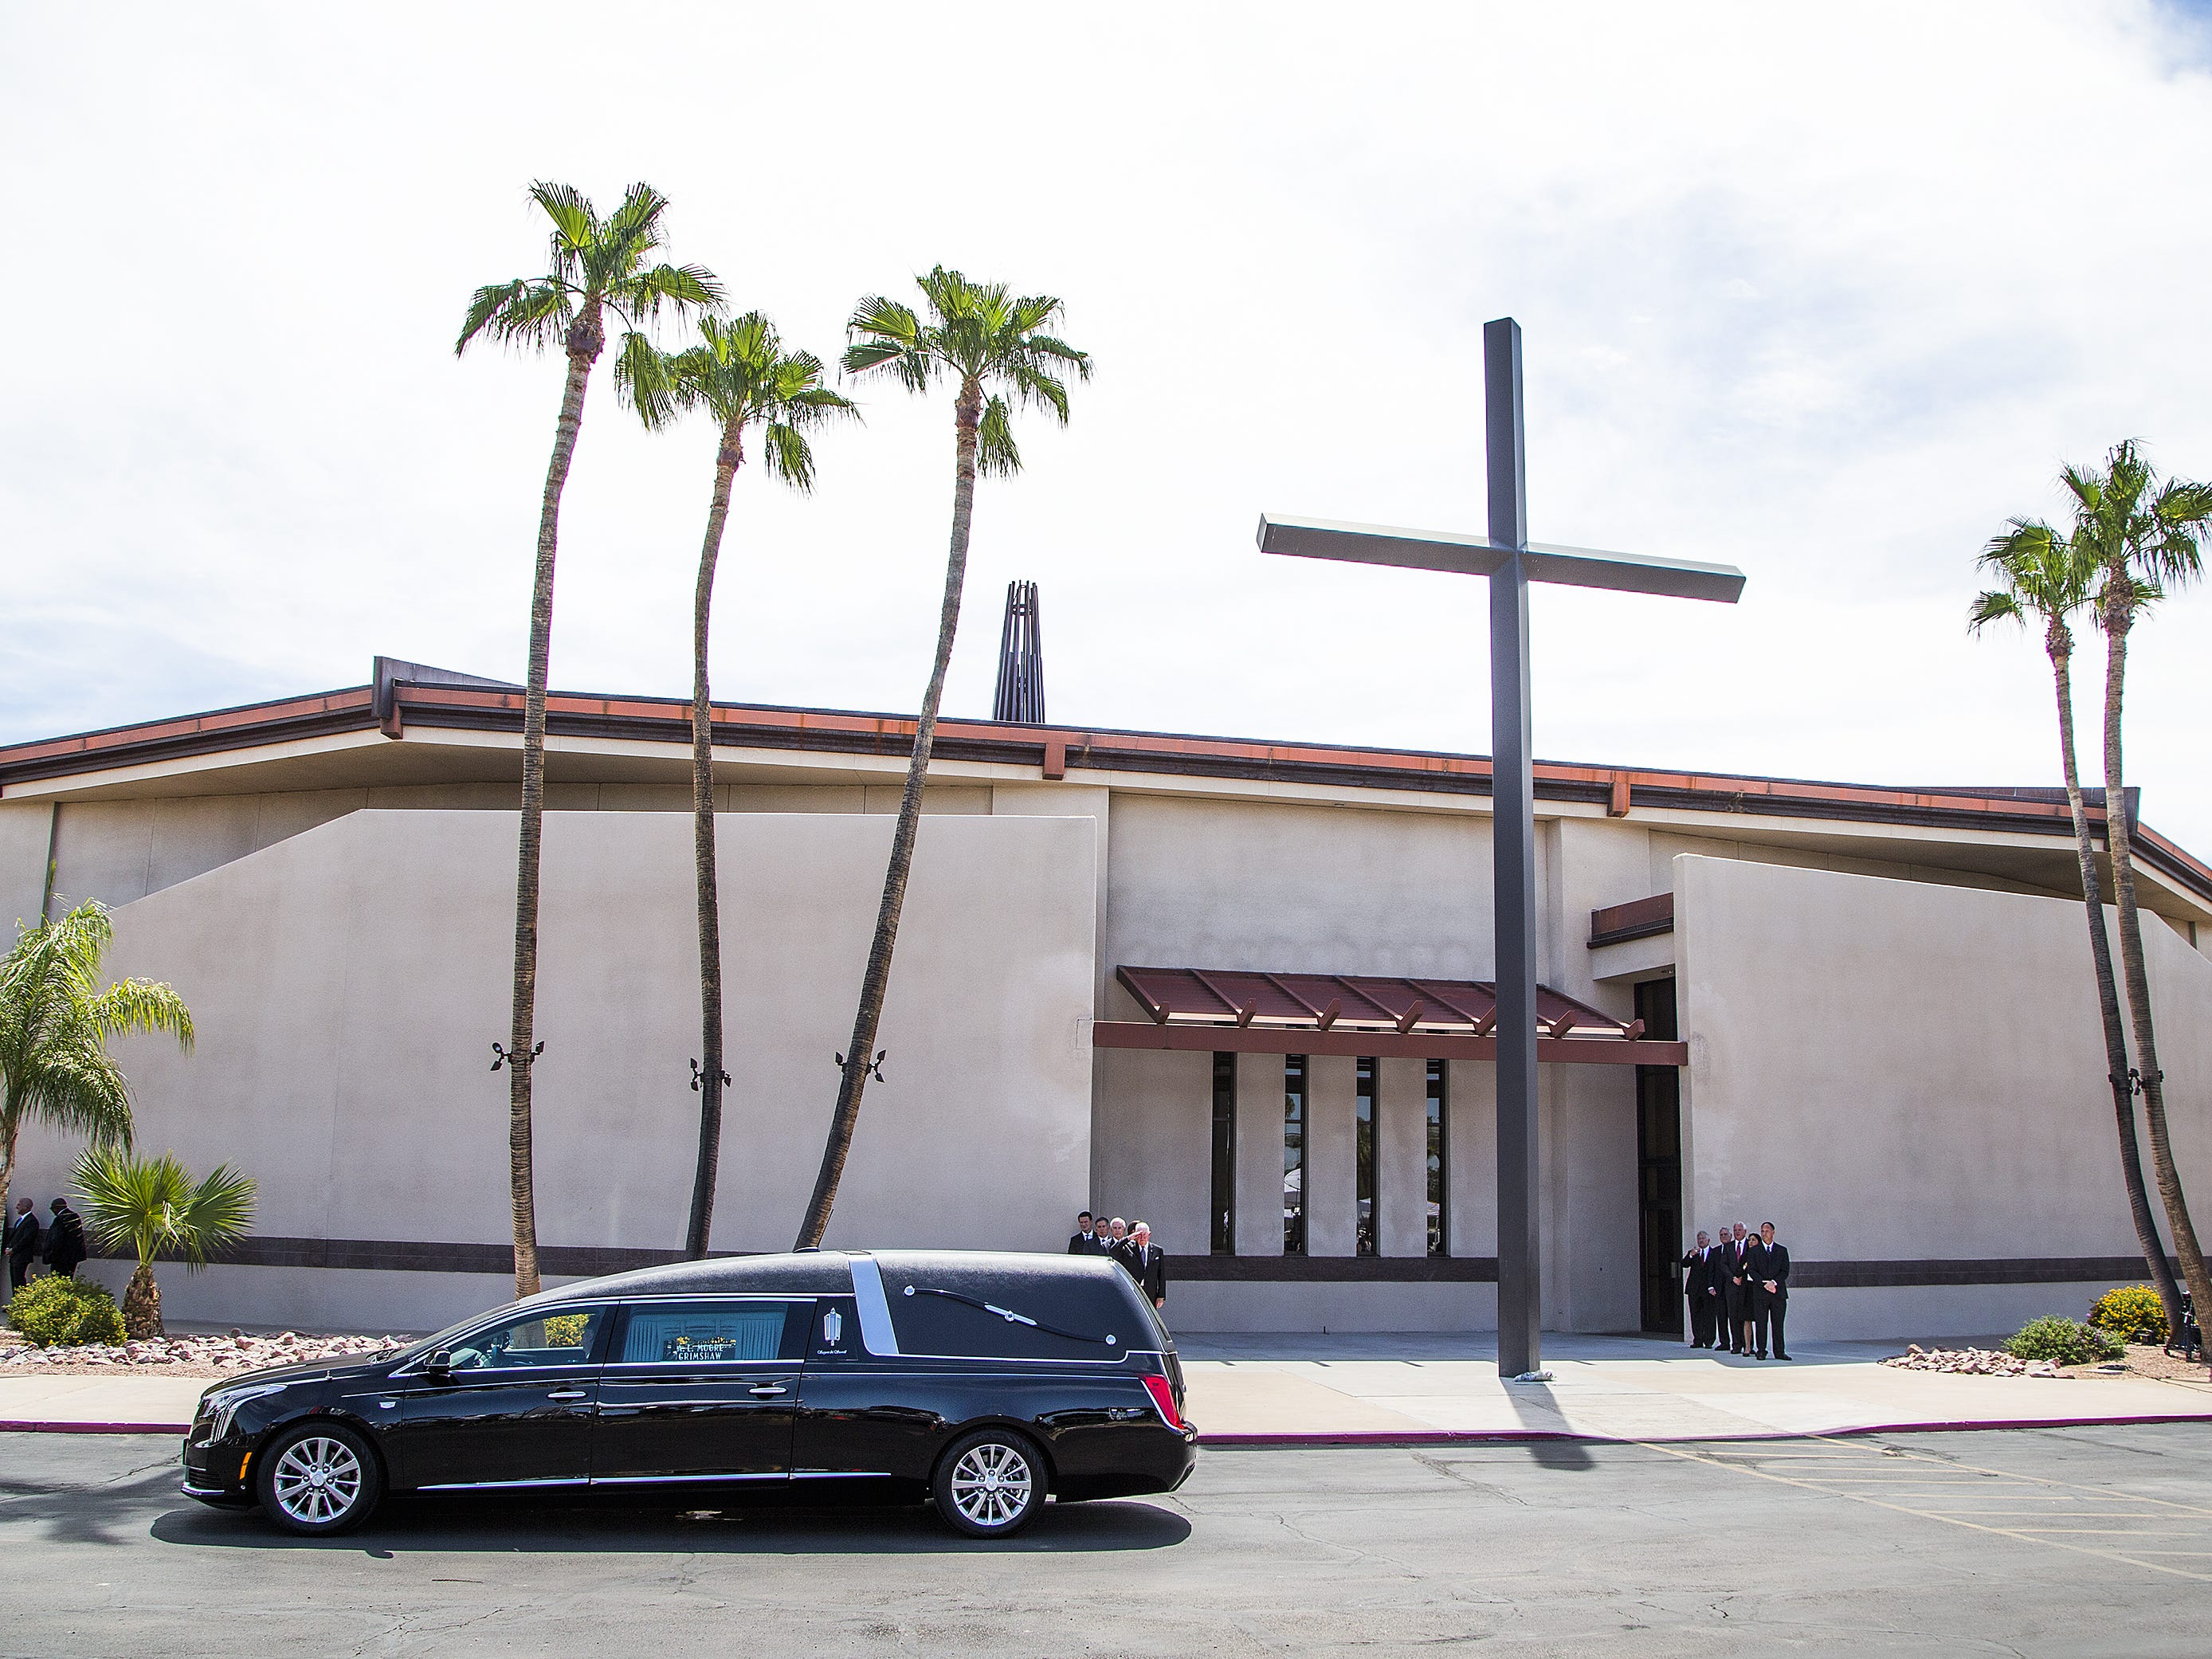 A hearse with the casket of Sen. John McCain leaves North Phoenix Baptist Church in Phoenix, Aug. 30, 2018, after a memorial service was held. McCain's body will now be flown to Washington, D.C.